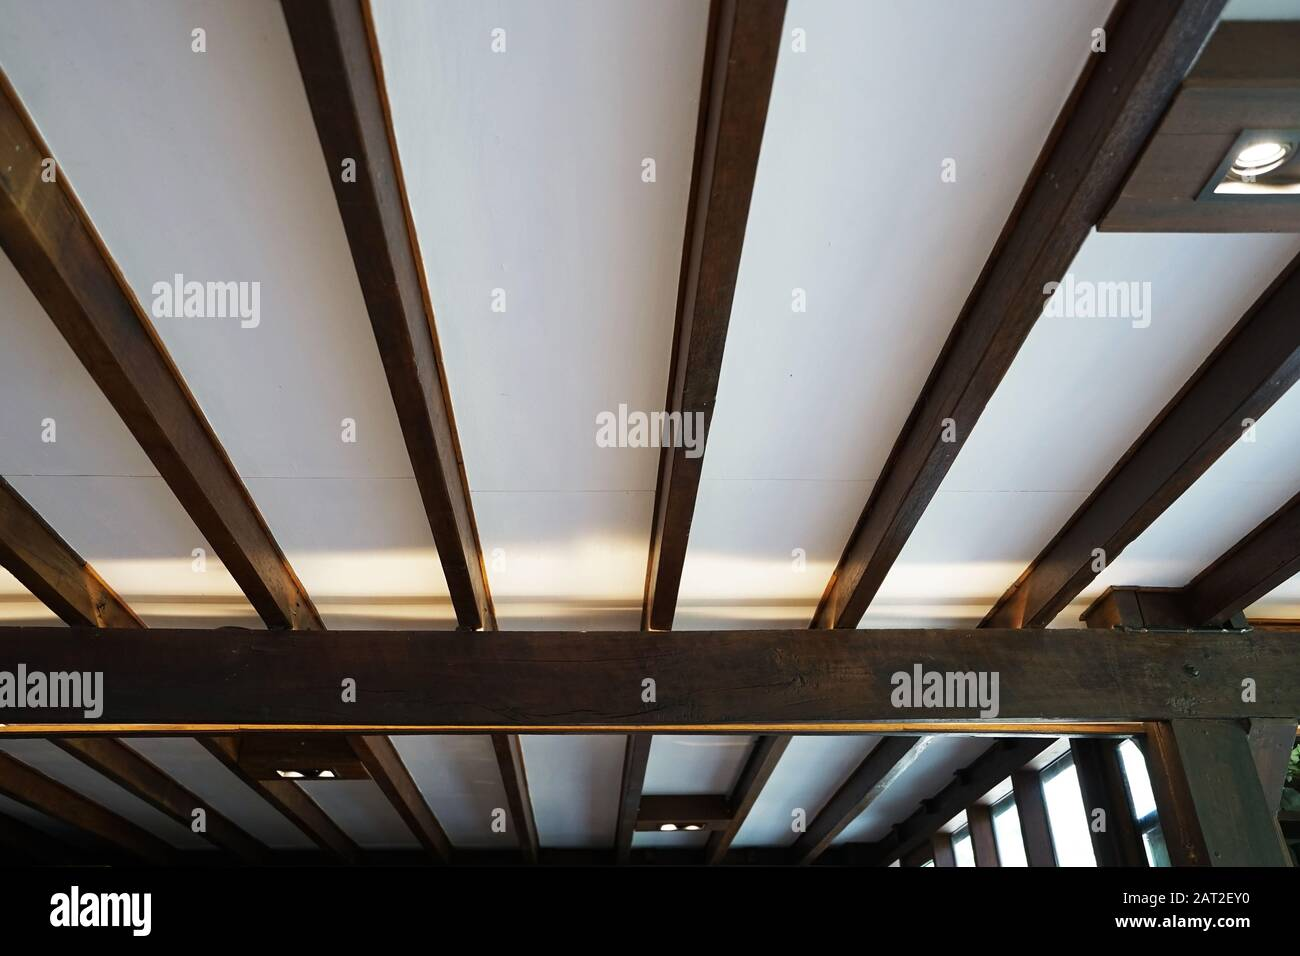 Image of: Interior Lighting Design And Ceiling Decoration Decorated With Wooden Panels And Window Frame Stock Photo Alamy